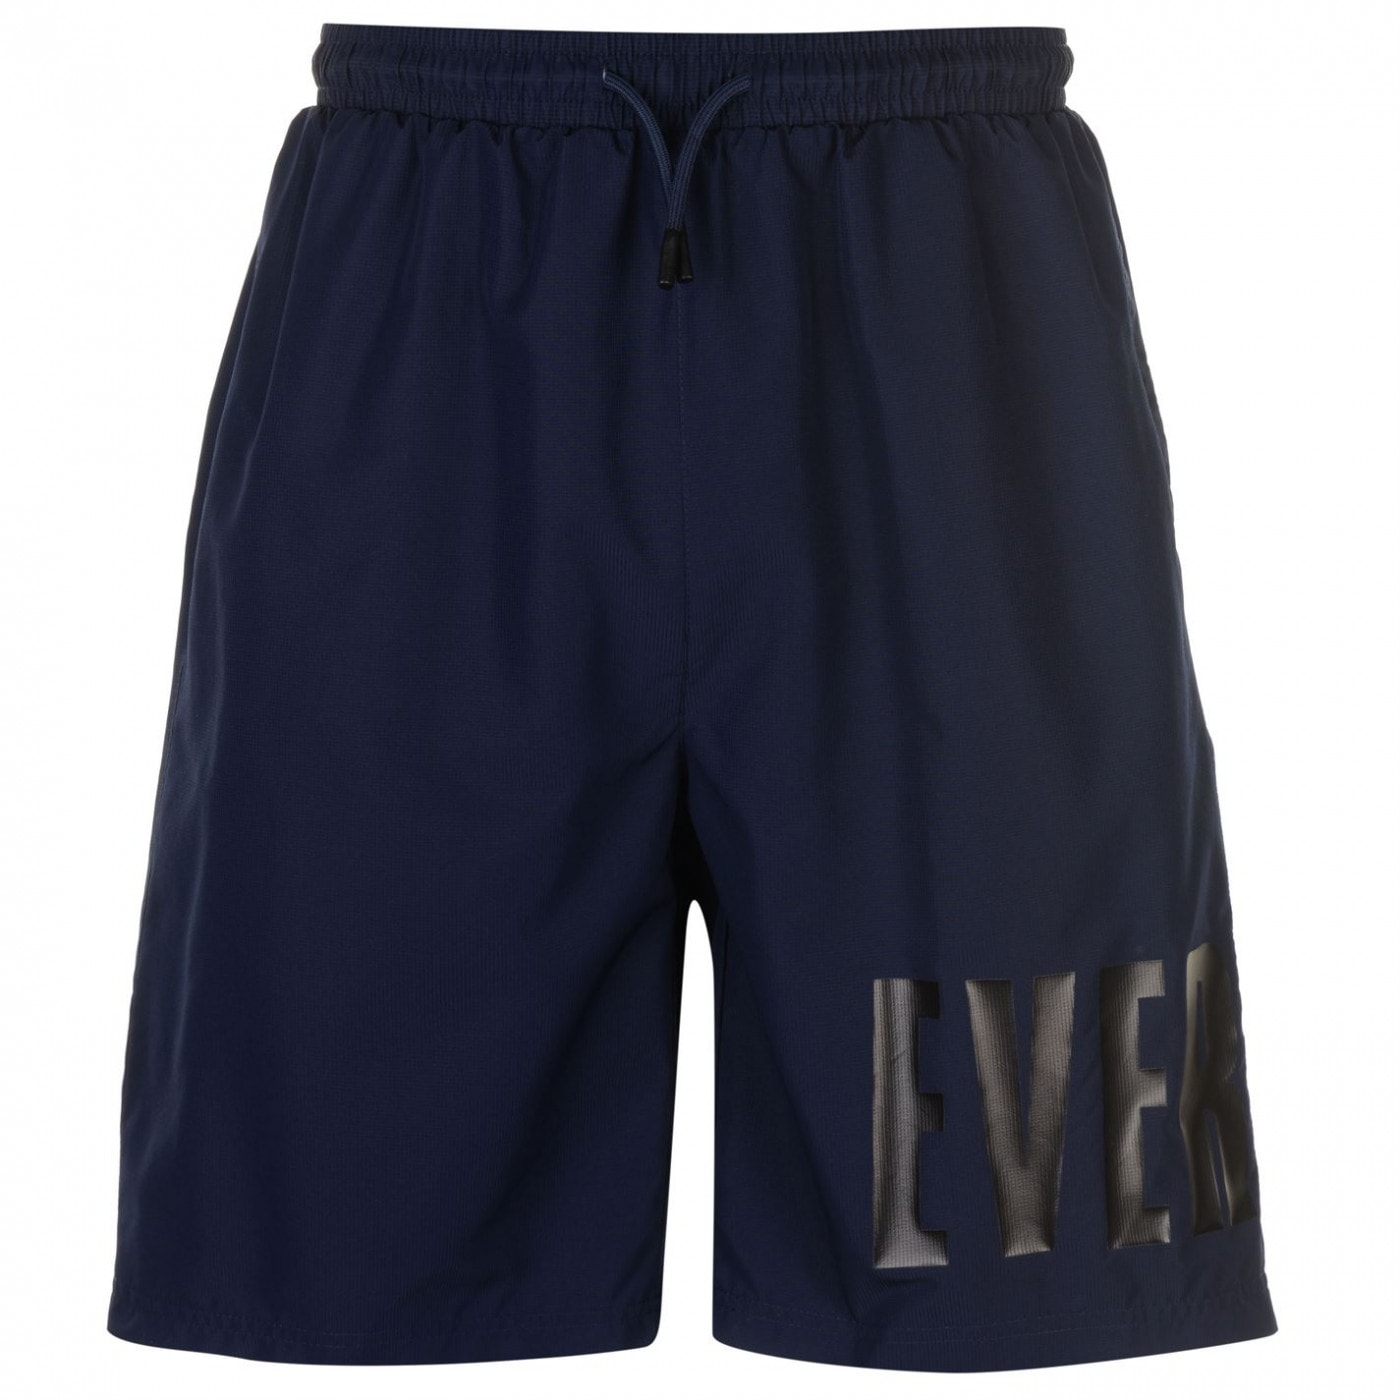 Everlast Woven Shorts Mens